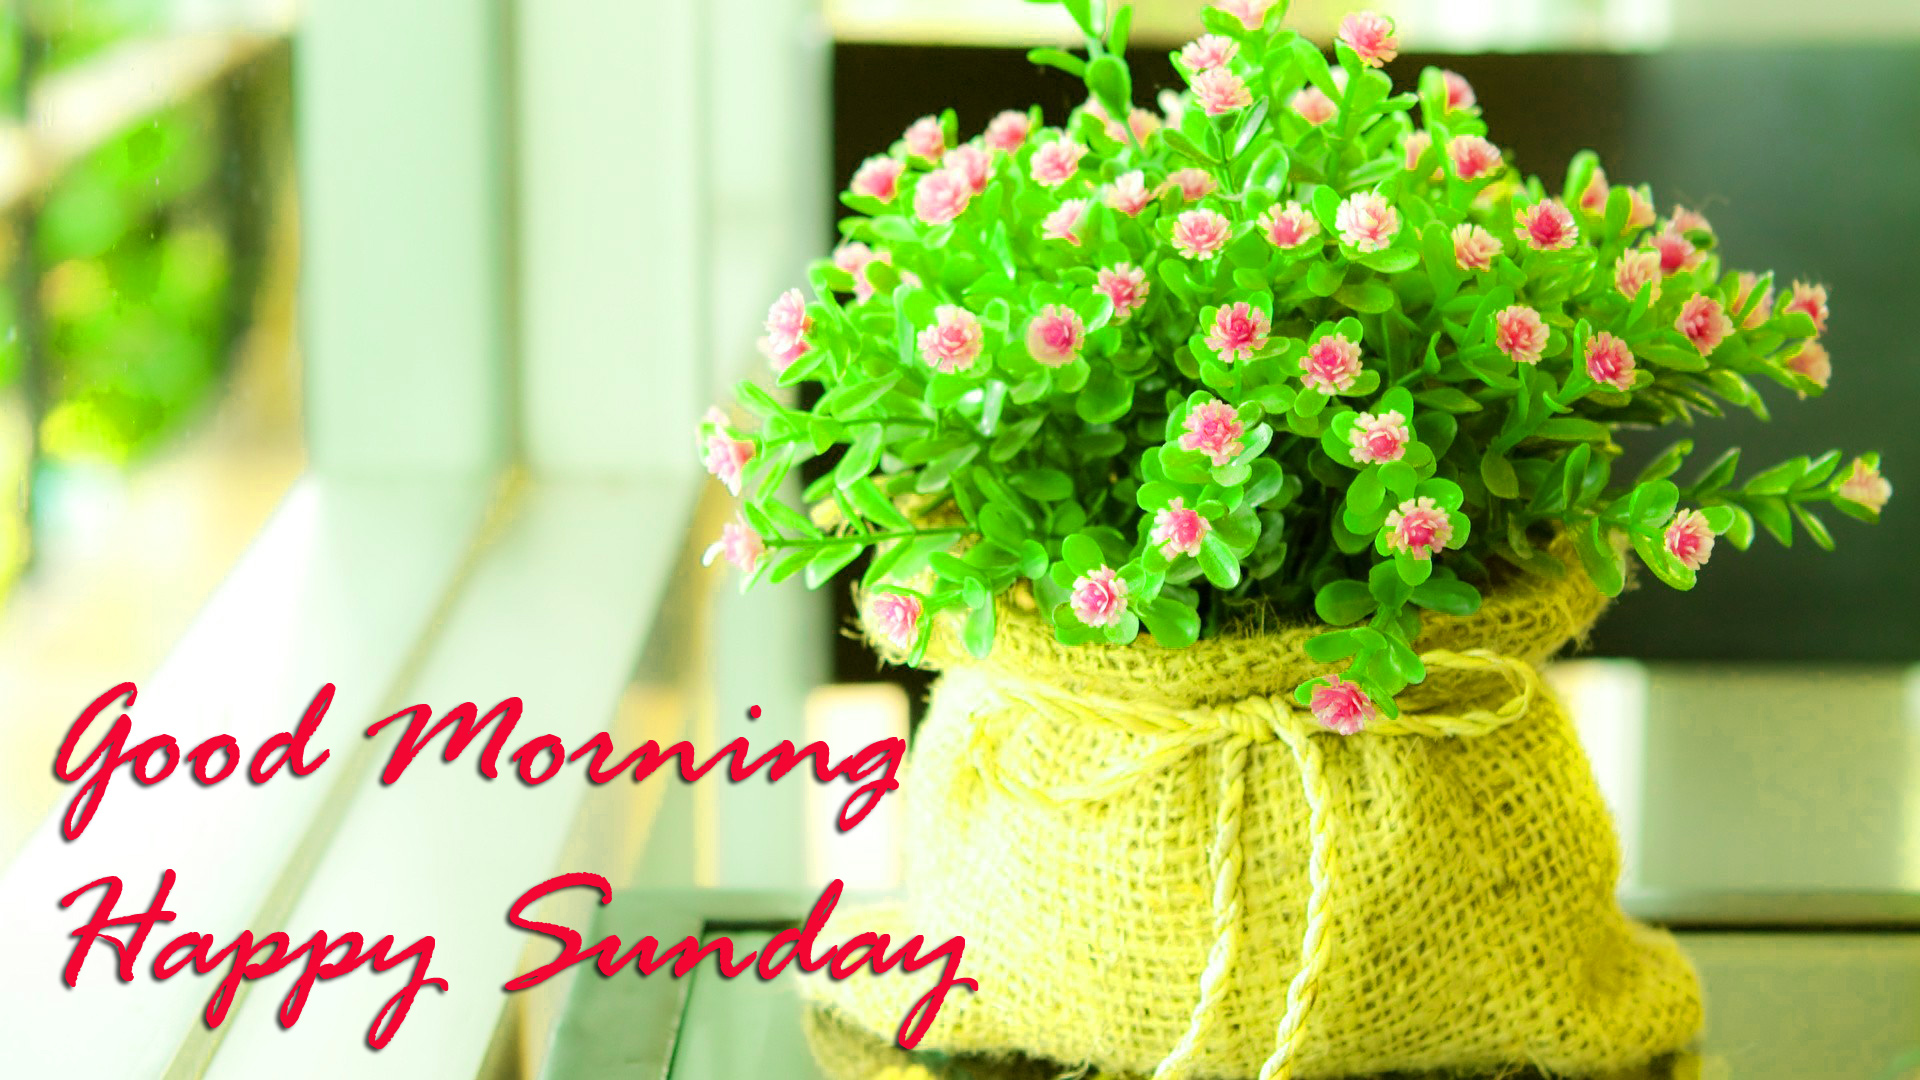 Beautiful HD Sunday Good Morning Images Pics Download for Facebook